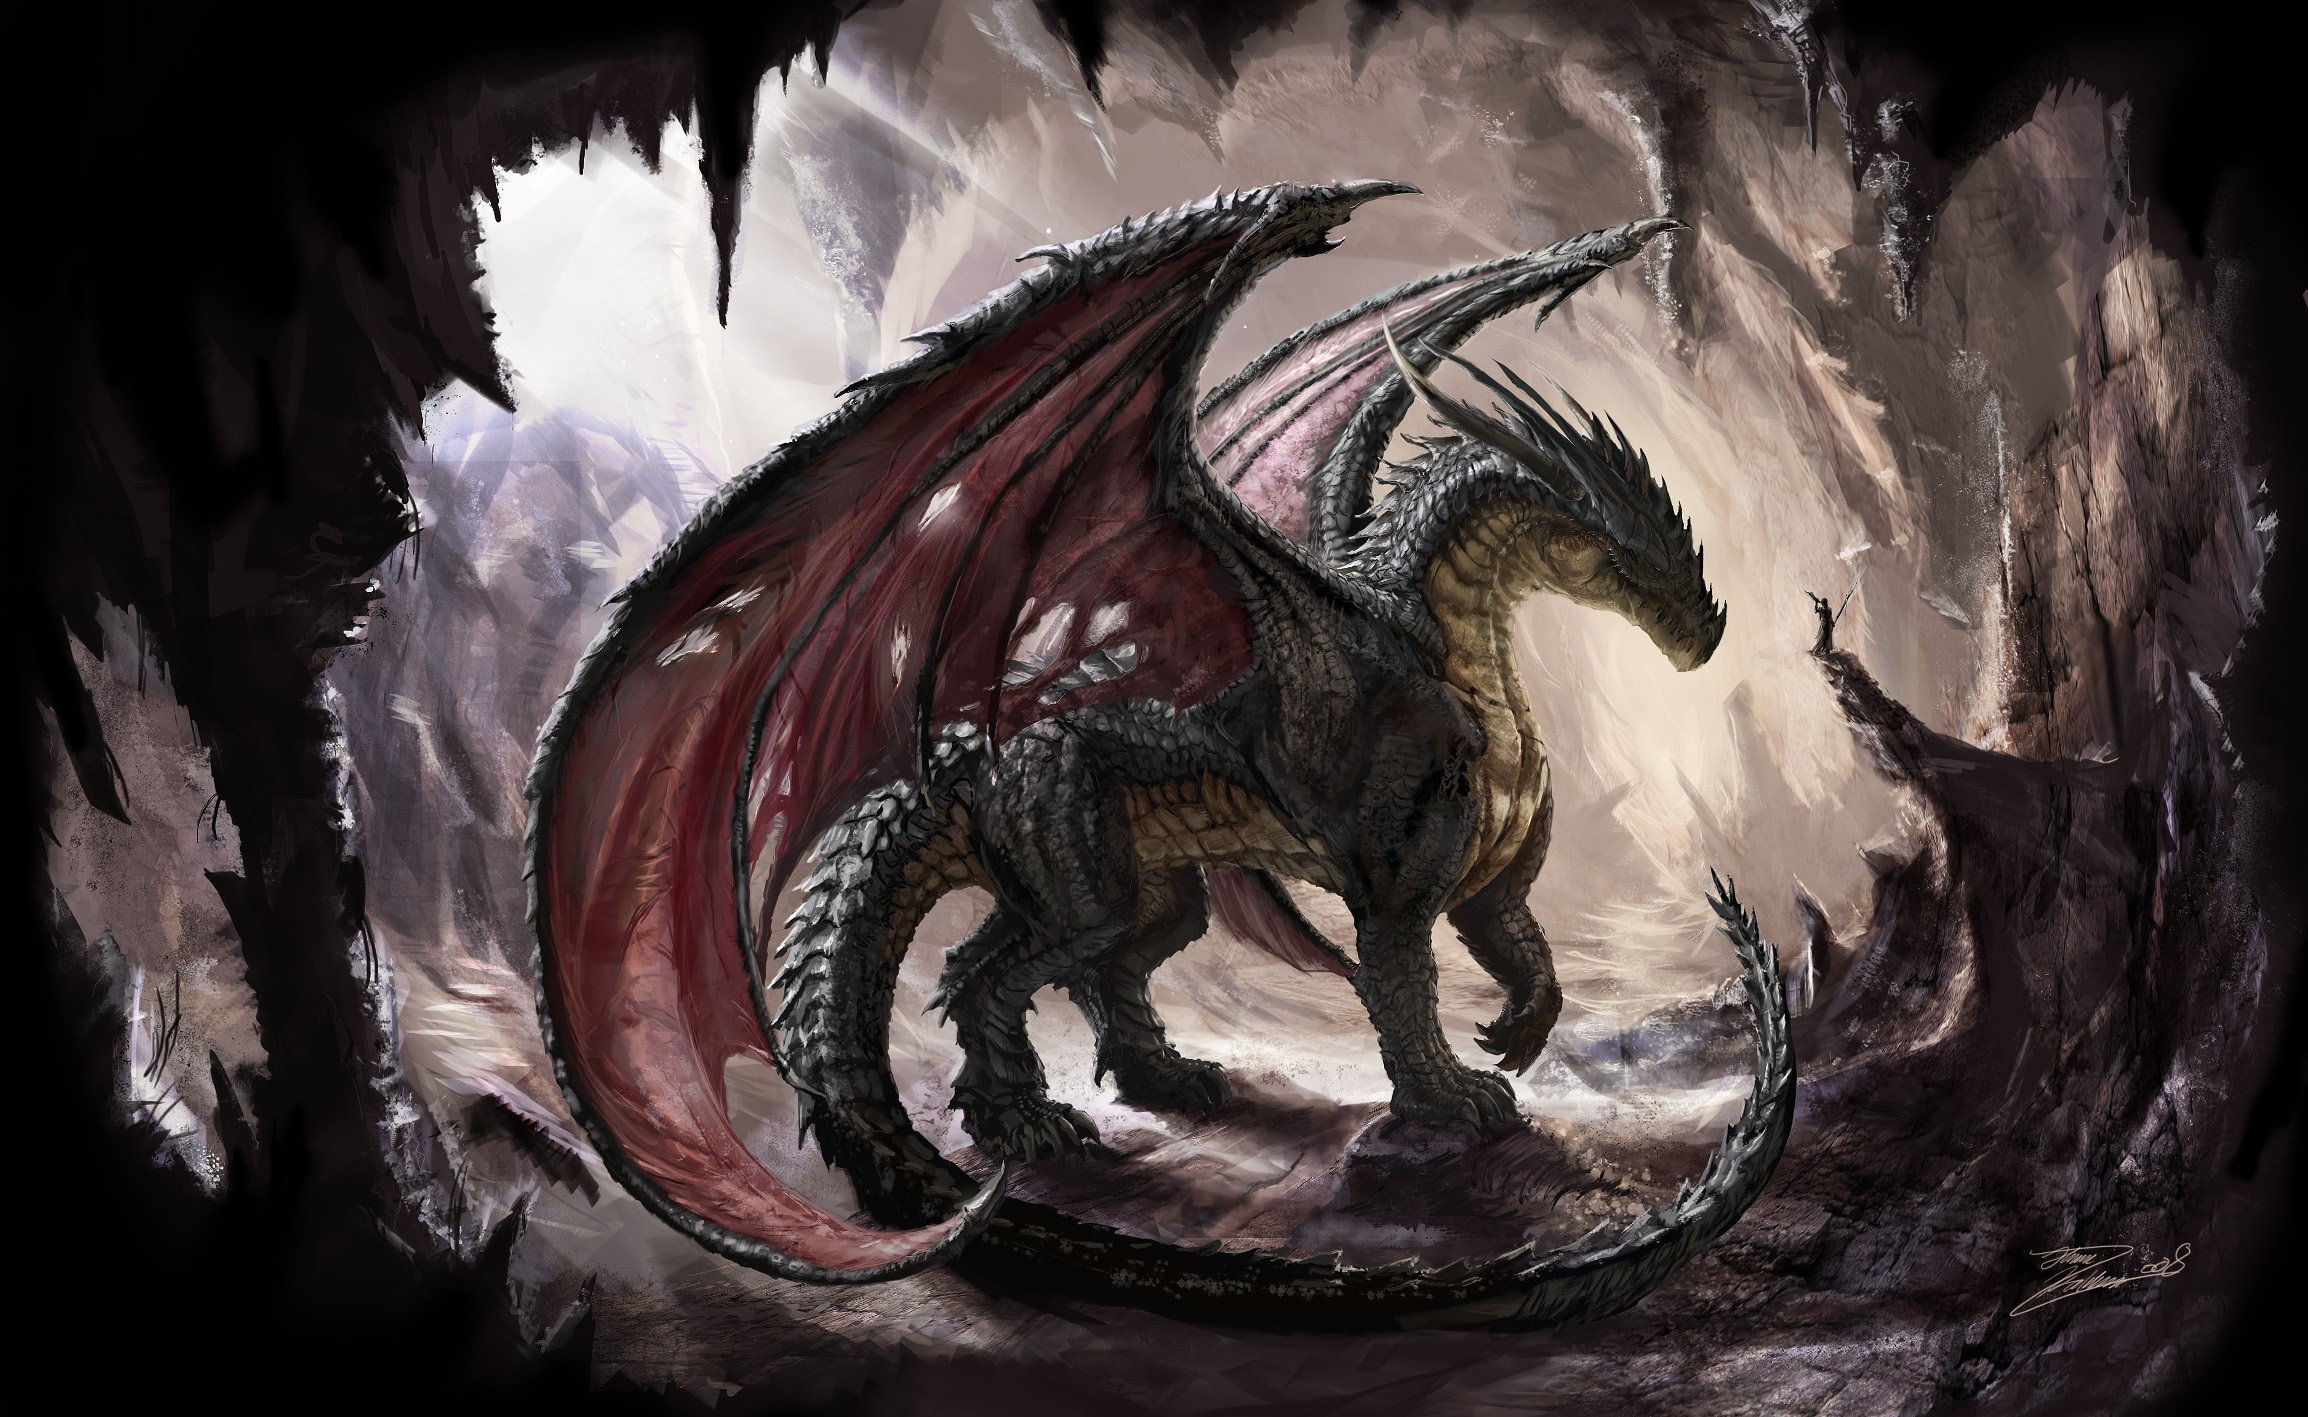 106433 download wallpaper Fantasy, Dragon, Cave, Shine, Light, Art screensavers and pictures for free